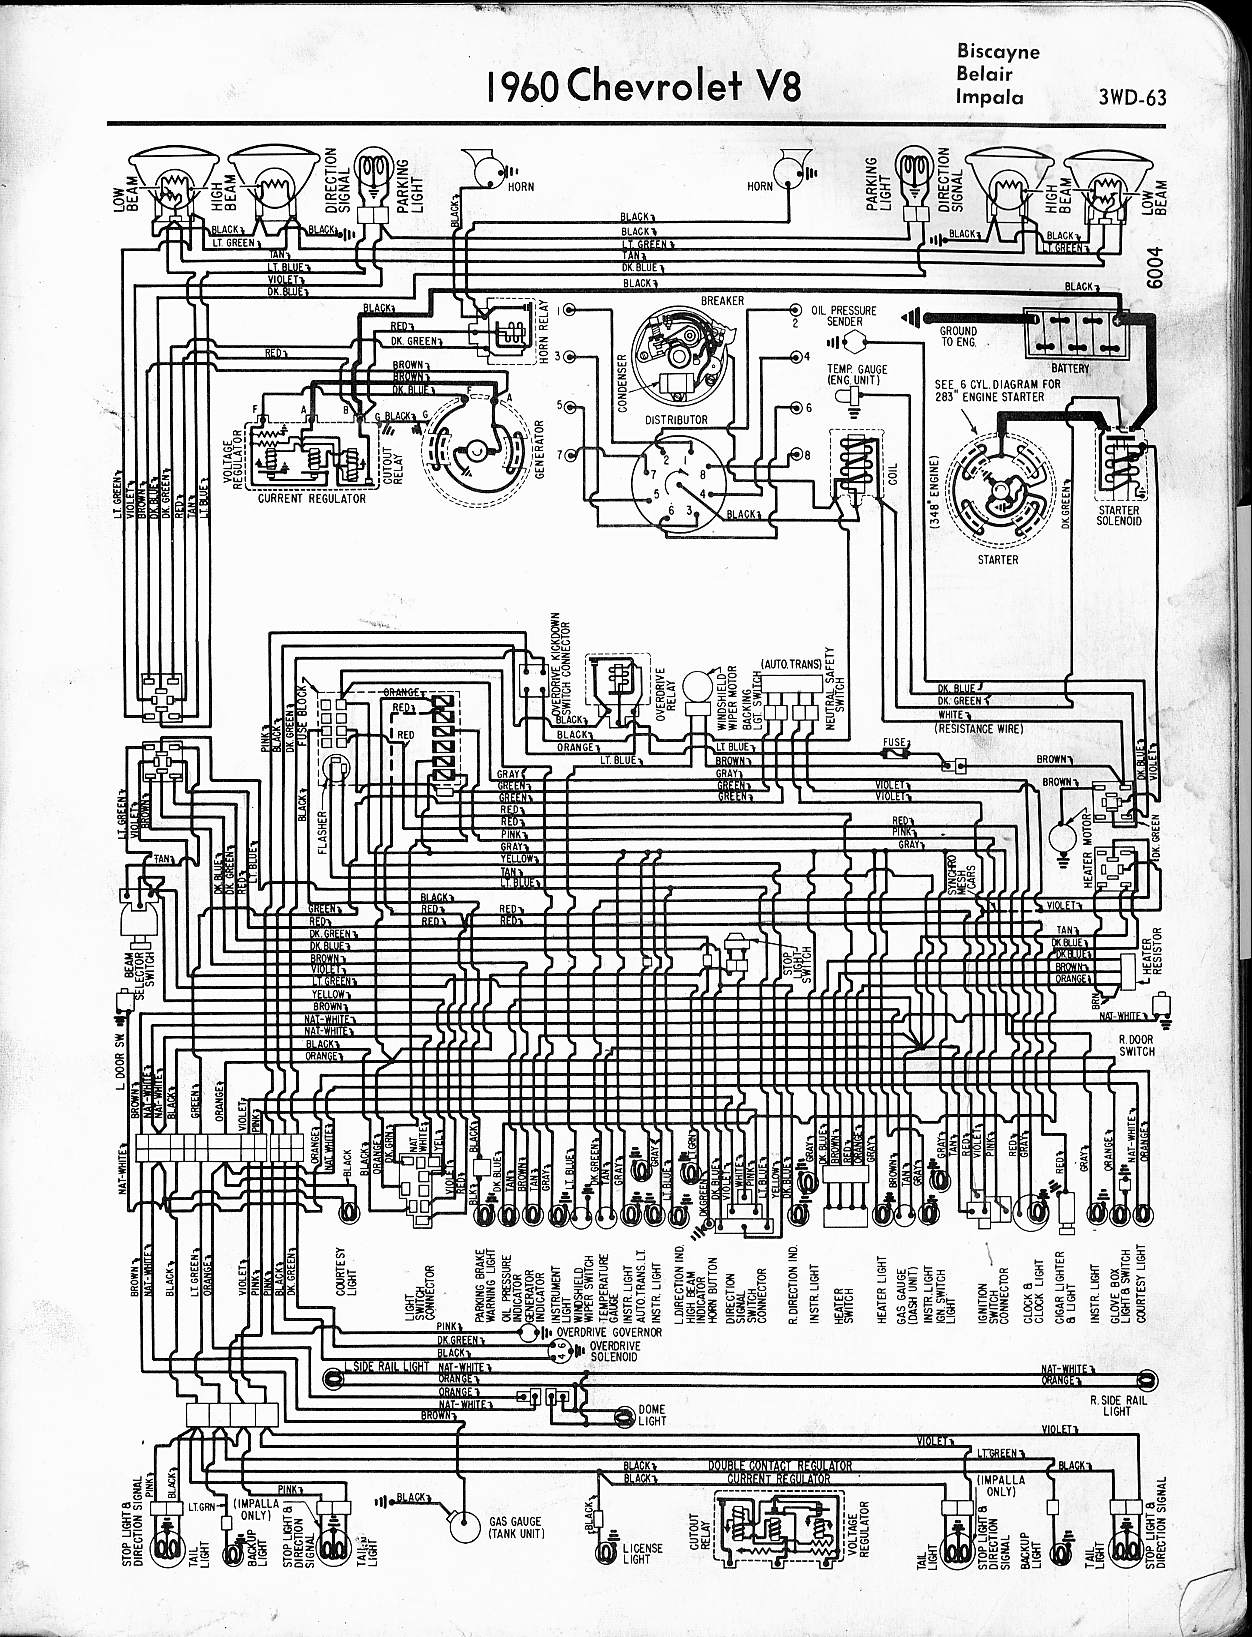 MWireChev60_3WD 063 57 65 chevy wiring diagrams 1964 el camino wiring harness at bayanpartner.co